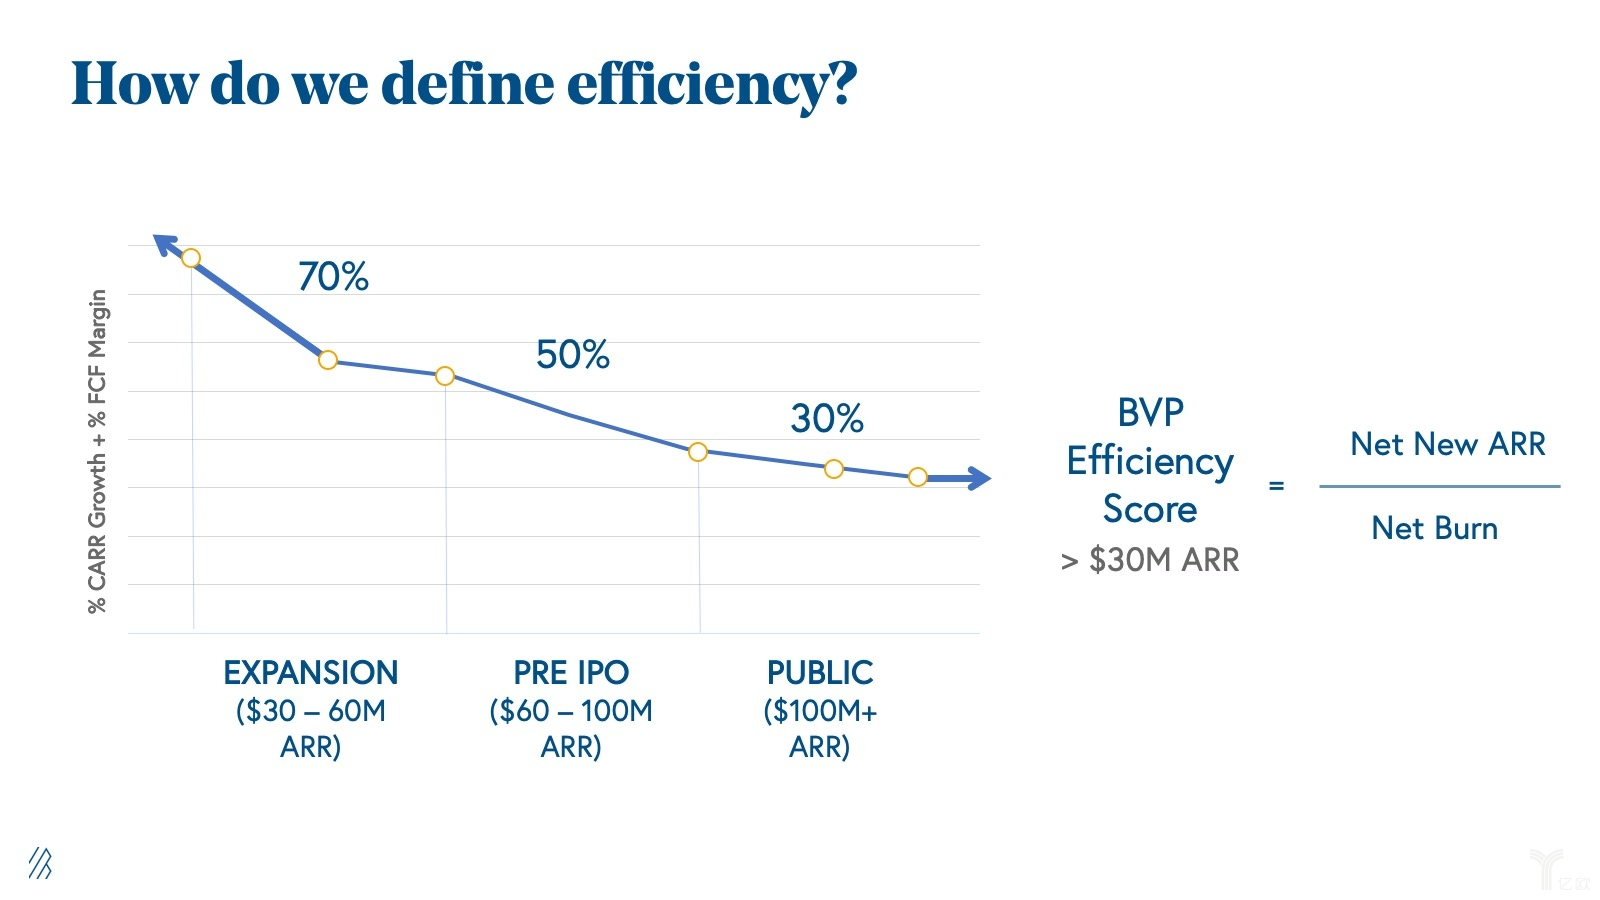 state-of-cloud-bvp-efficiency-score.jpg